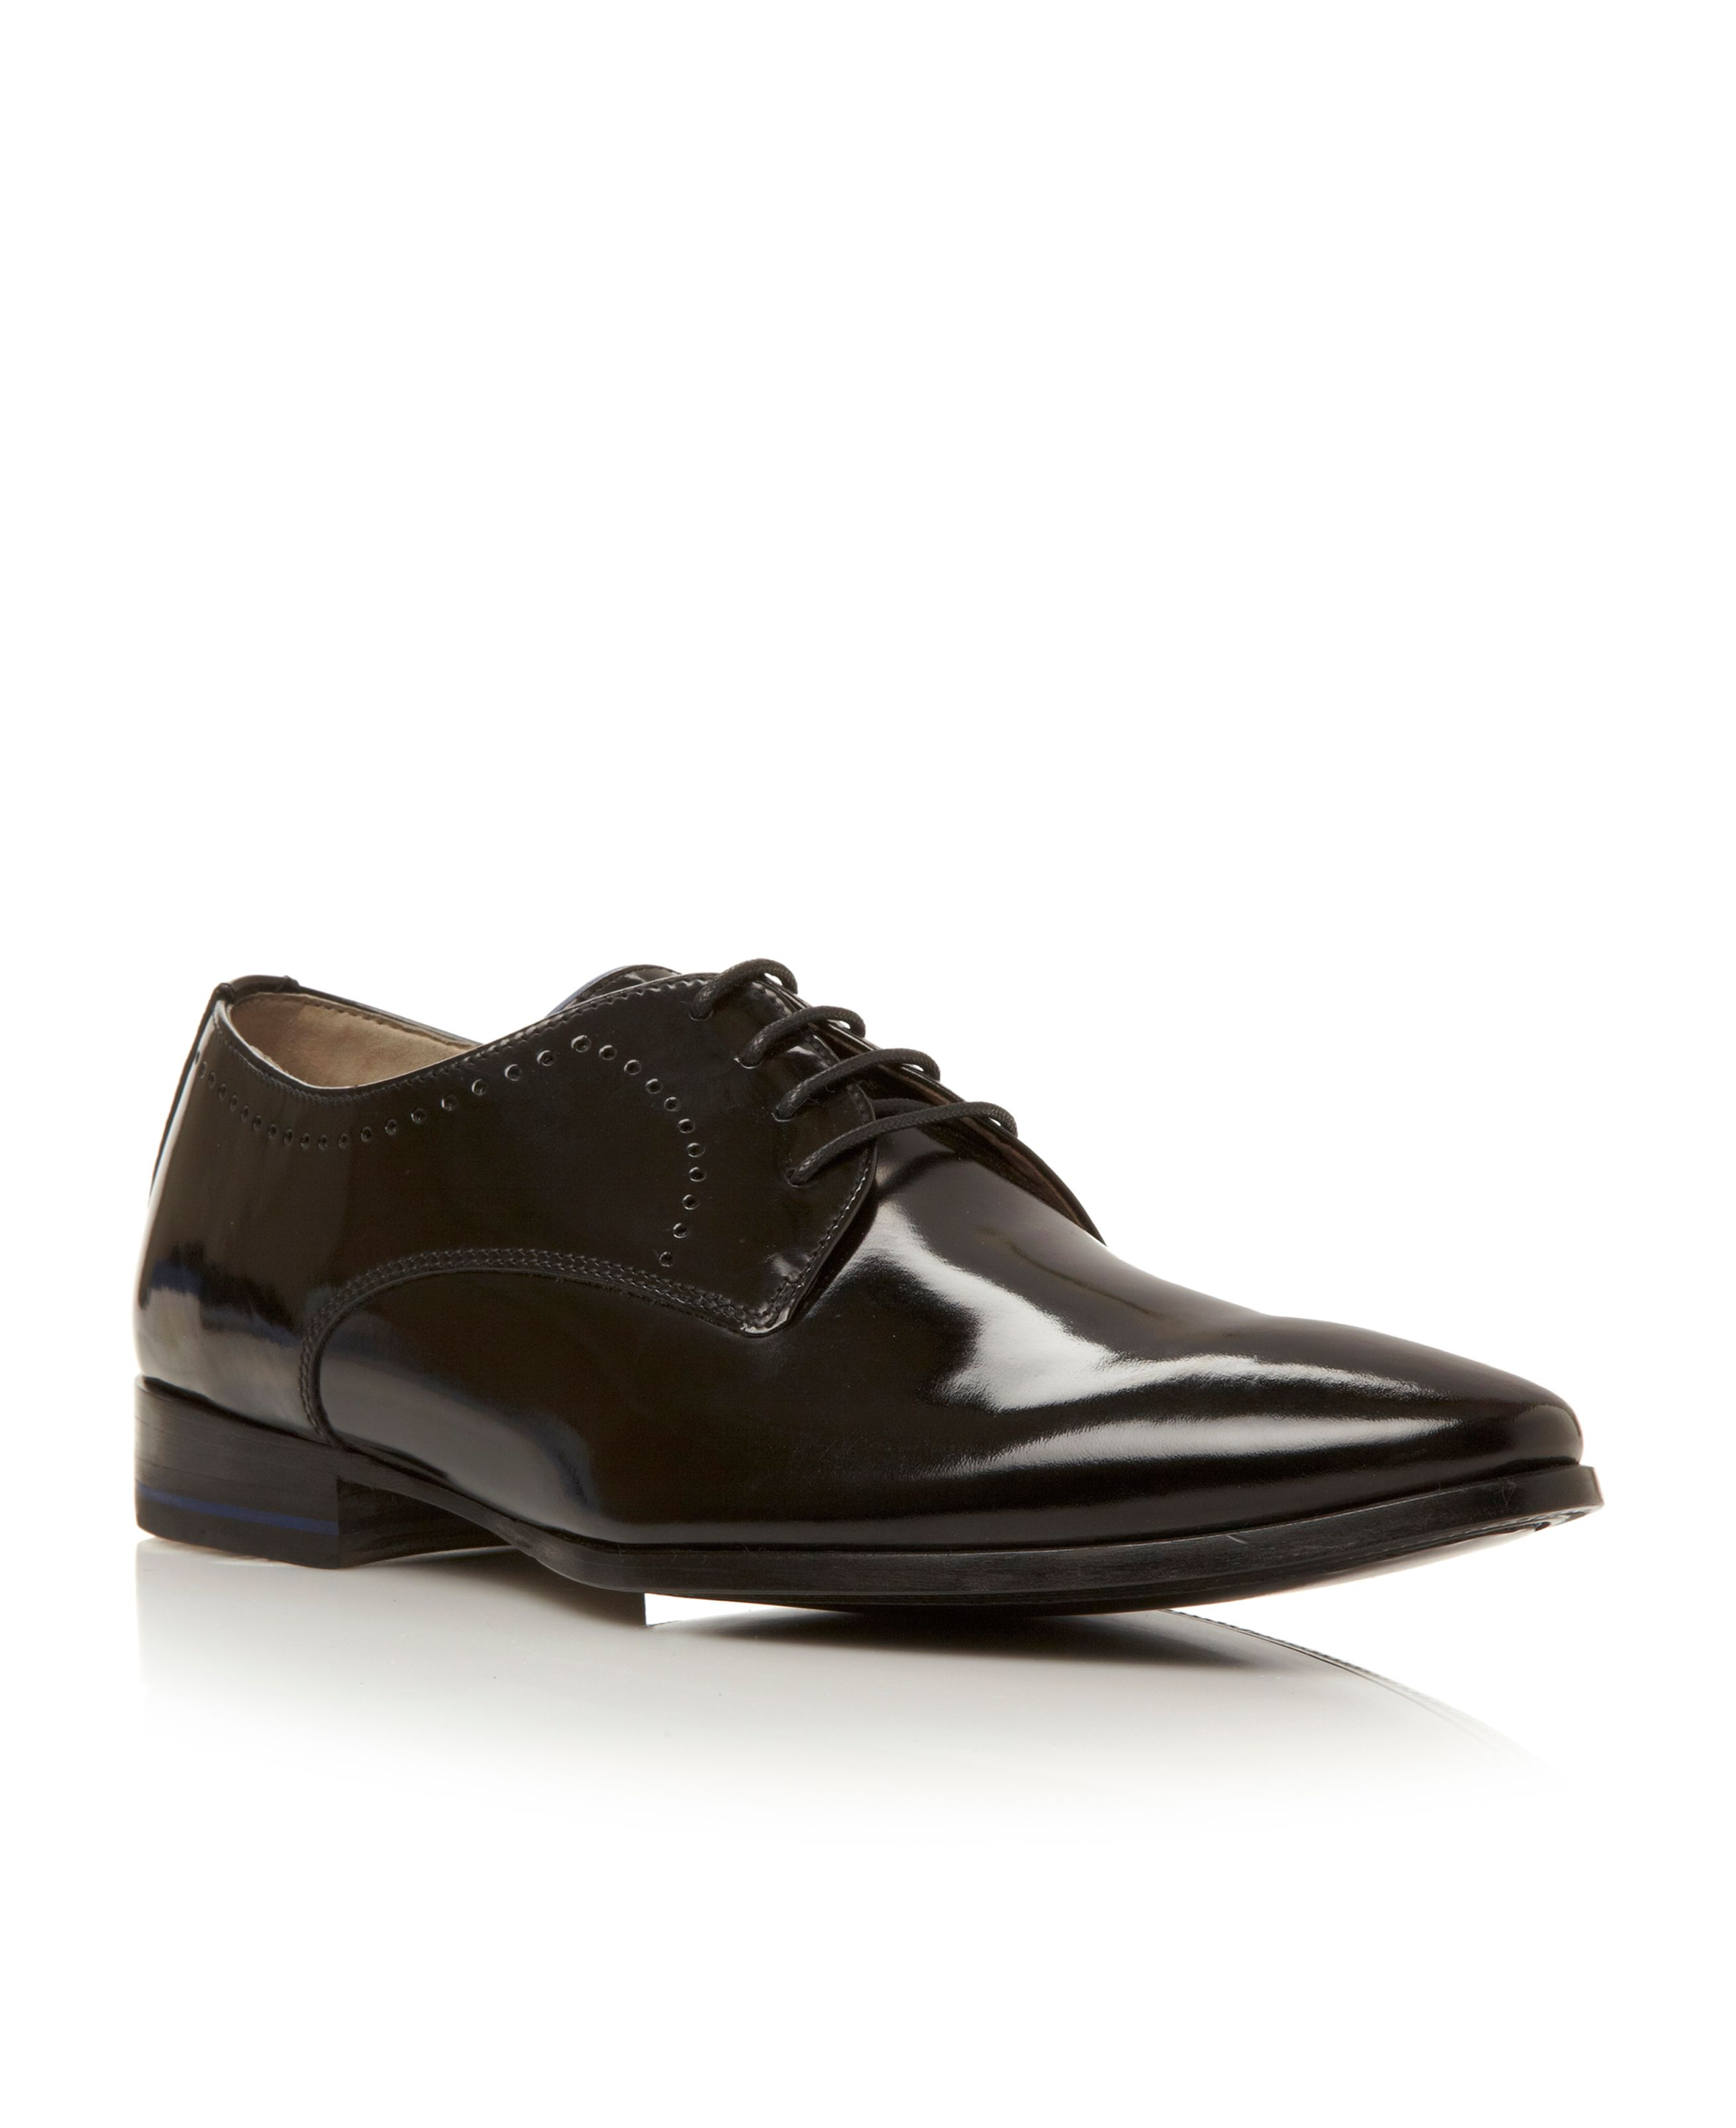 Bramford-punched detail formal shoe